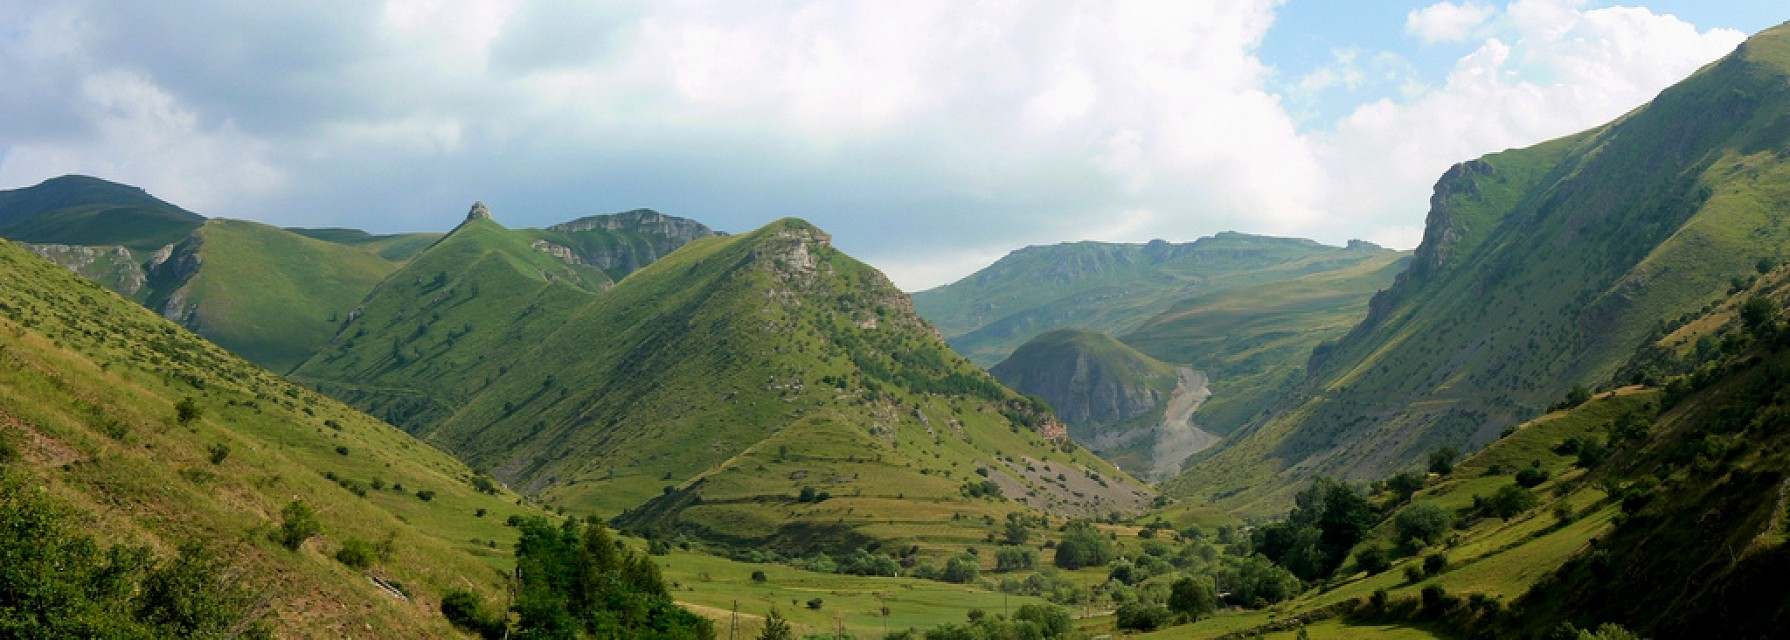 Panorama view of Šar mountains landscape (Шар-планина, Malet e Sharrit) - Šar Mountains